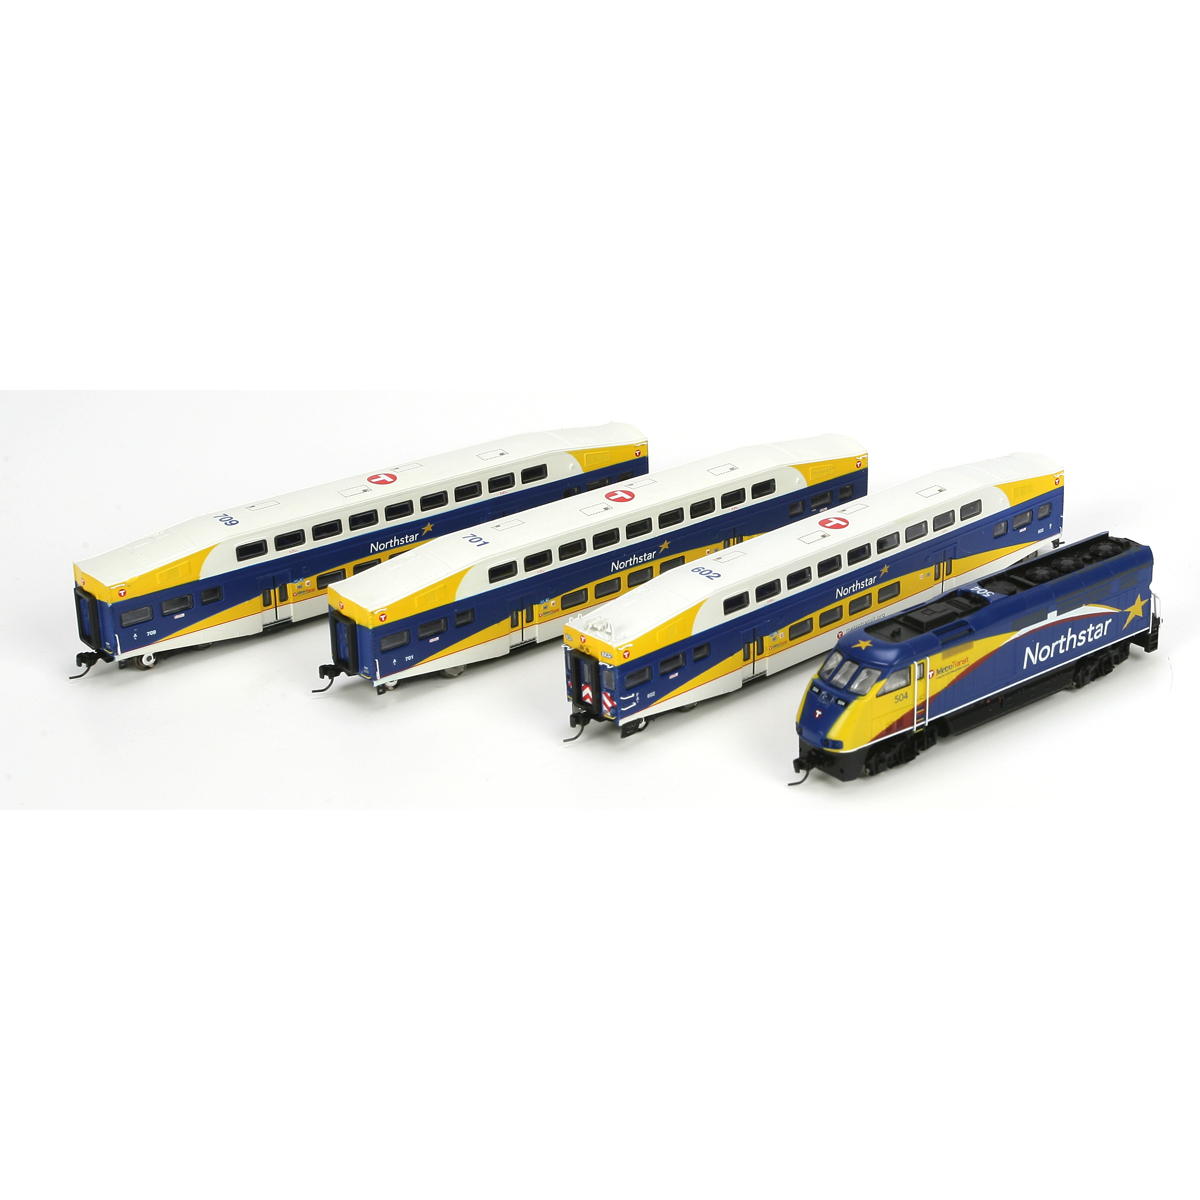 N Scale - Athearn - 25983 - Passenger Car, Commuter, Bombardier Multi-Level - Northstar Commuter - 4 numbers